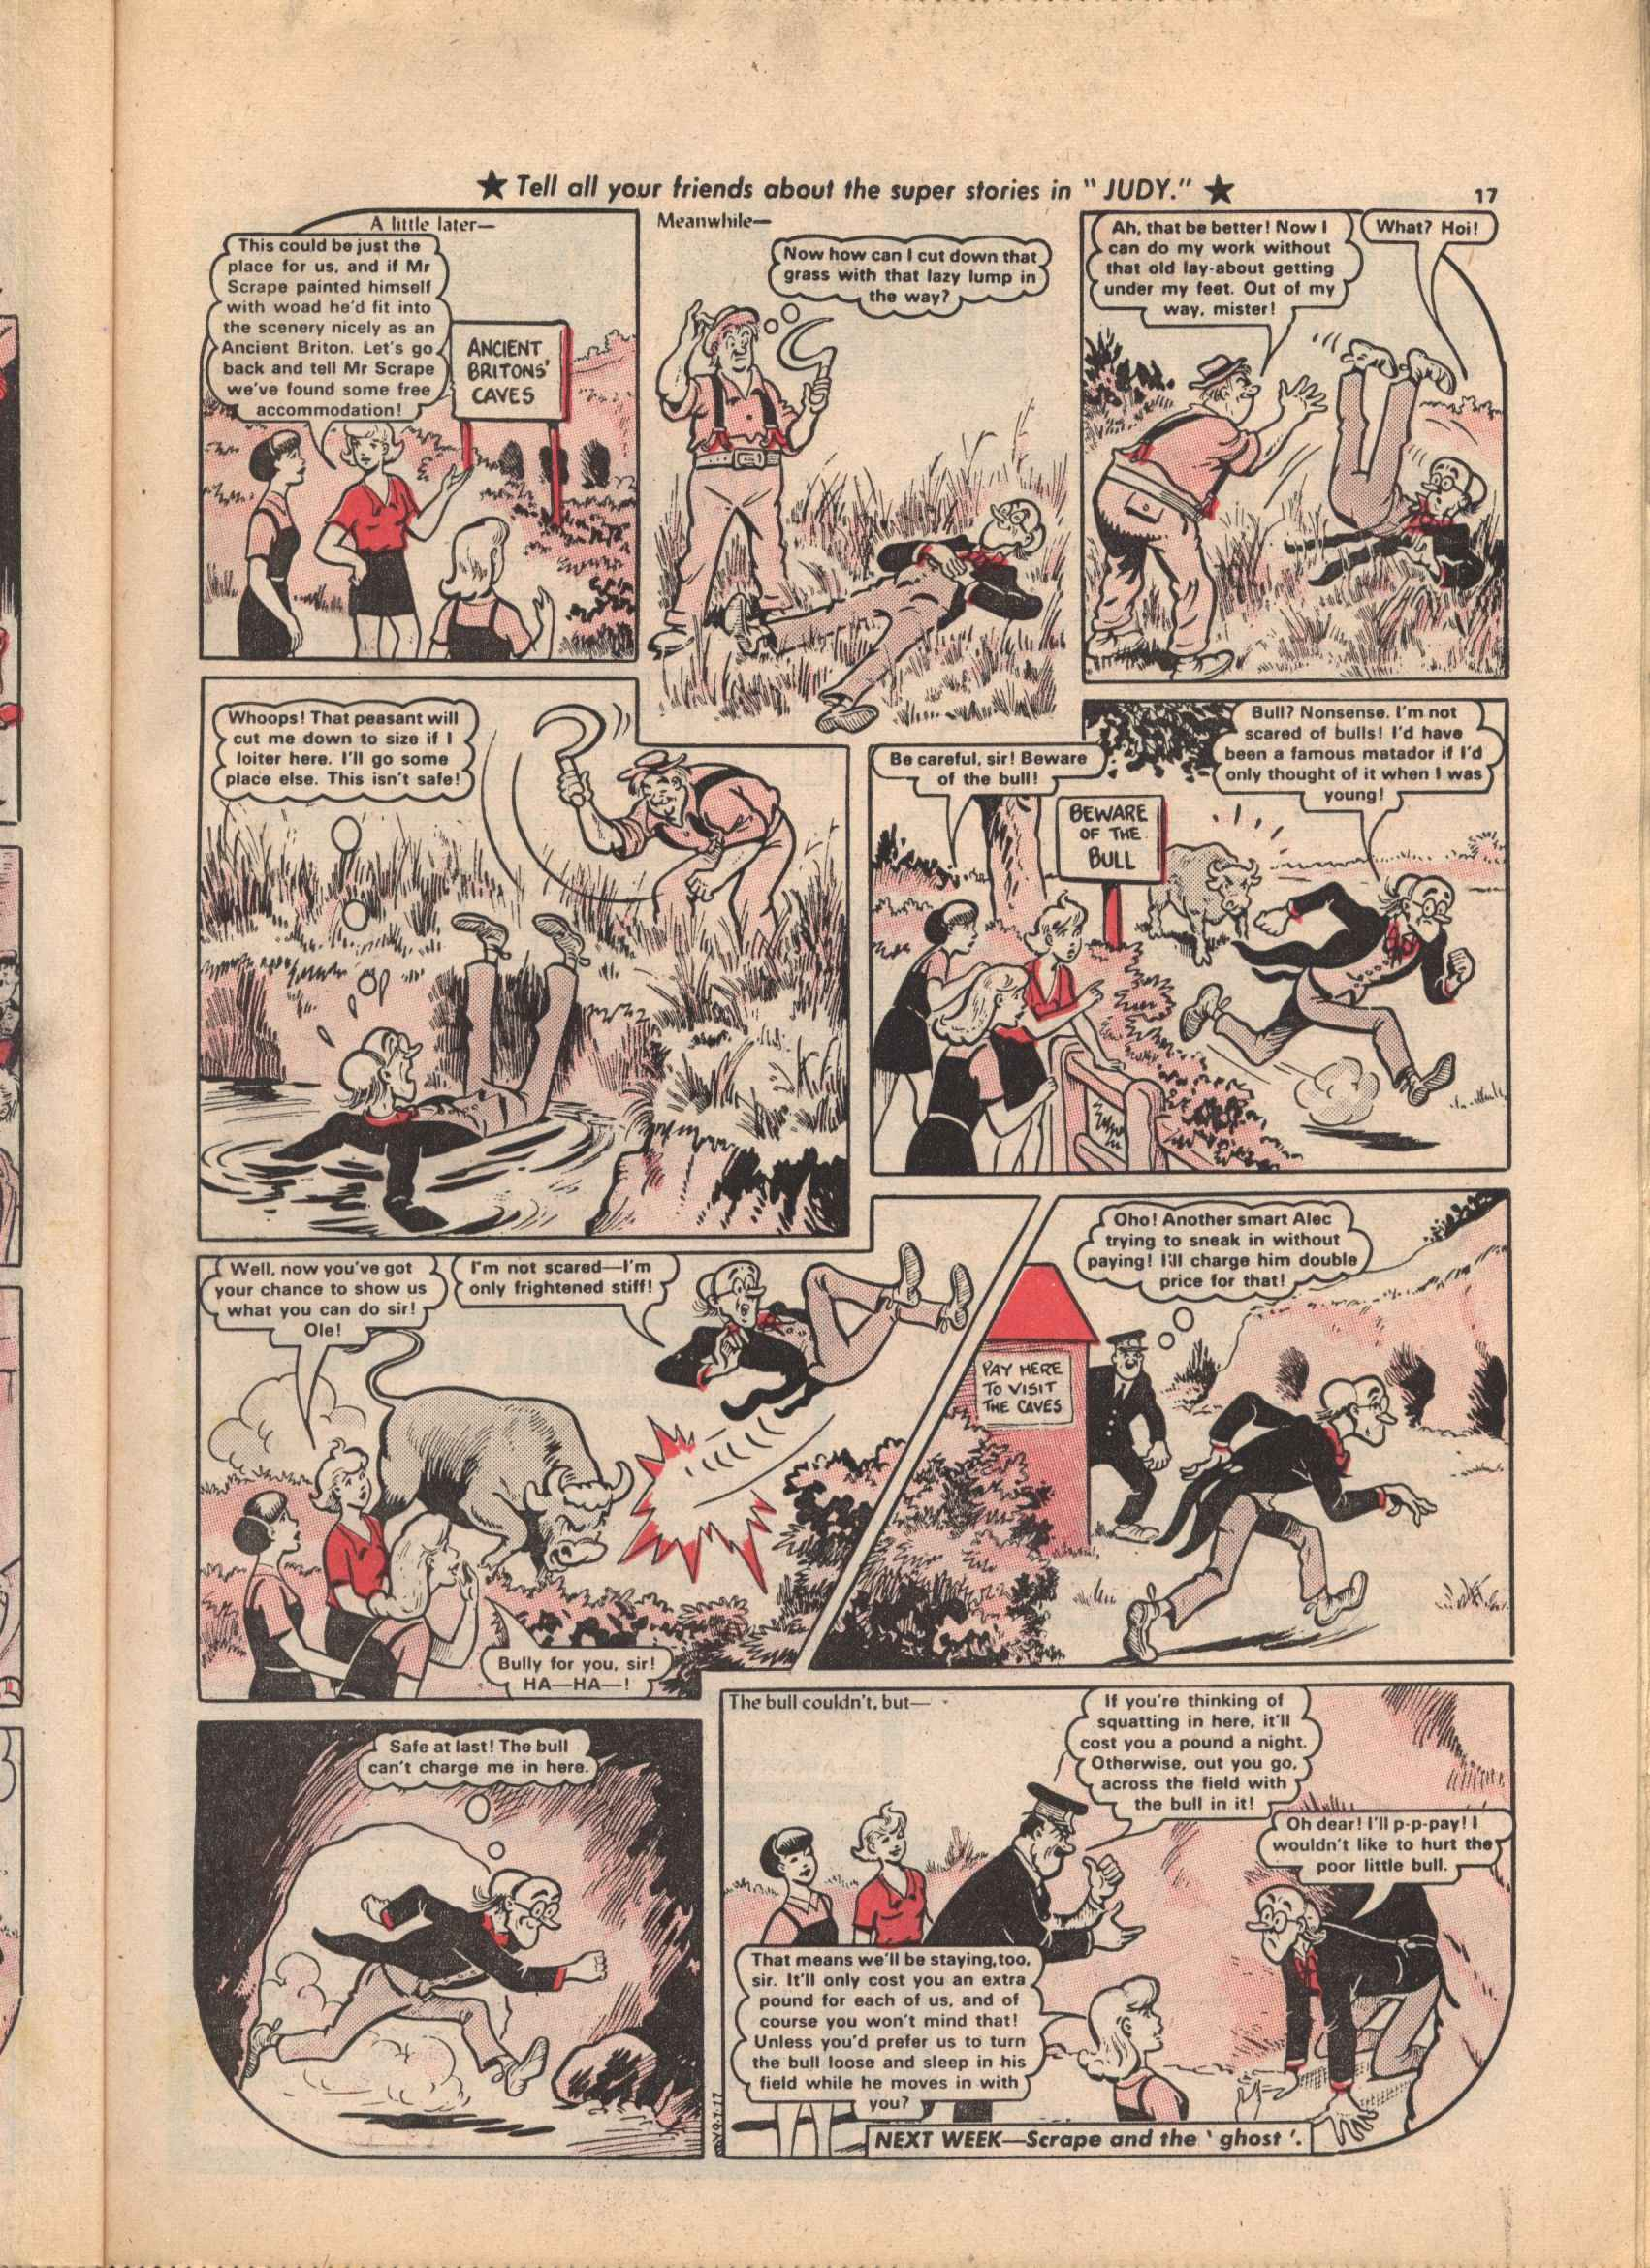 Read online Judy comic -  Issue #913 - 17